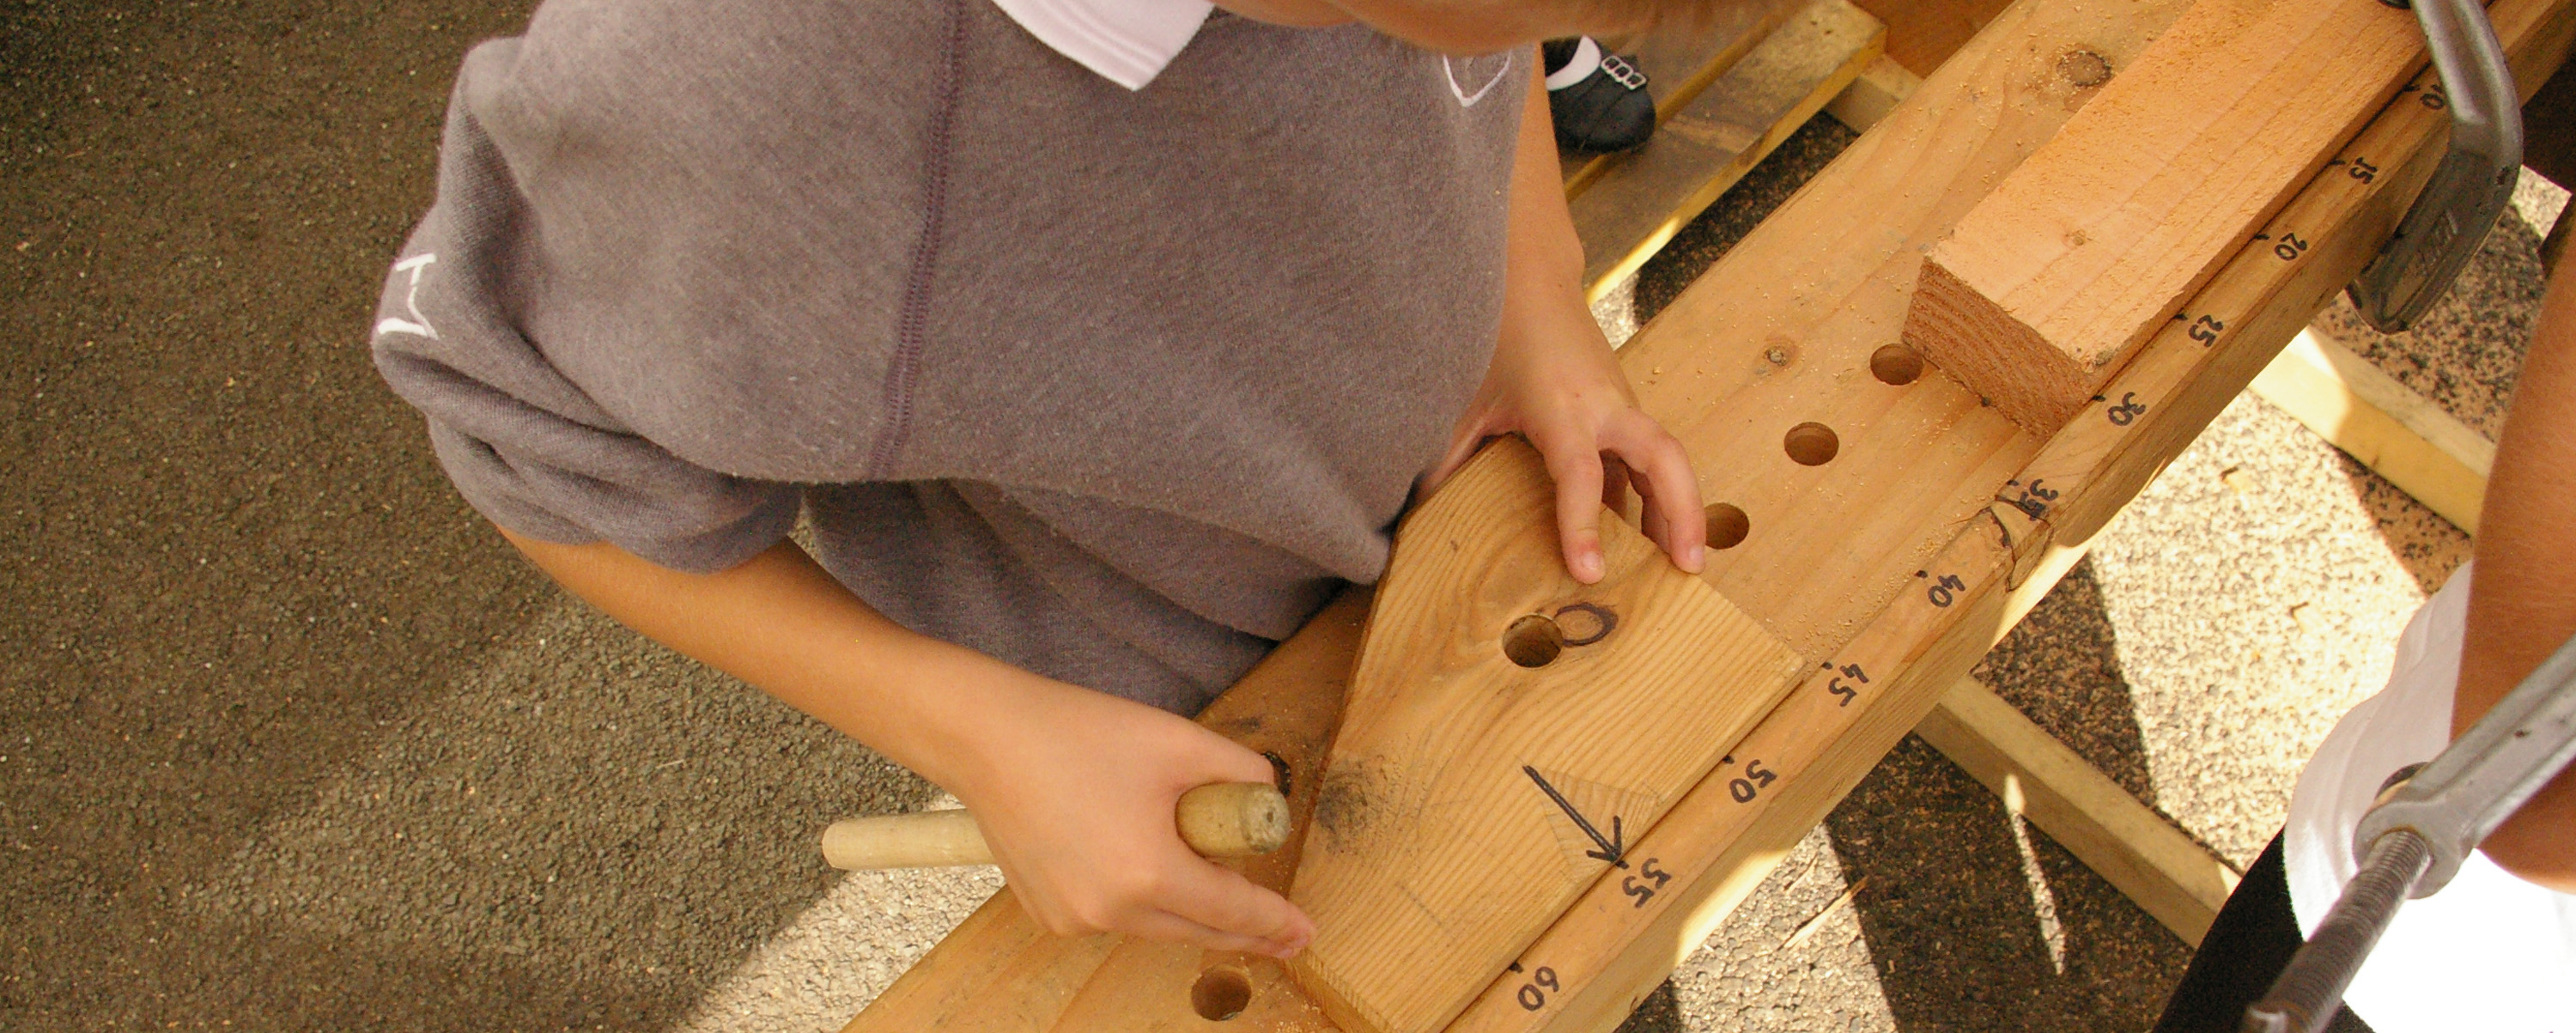 Setting the saw